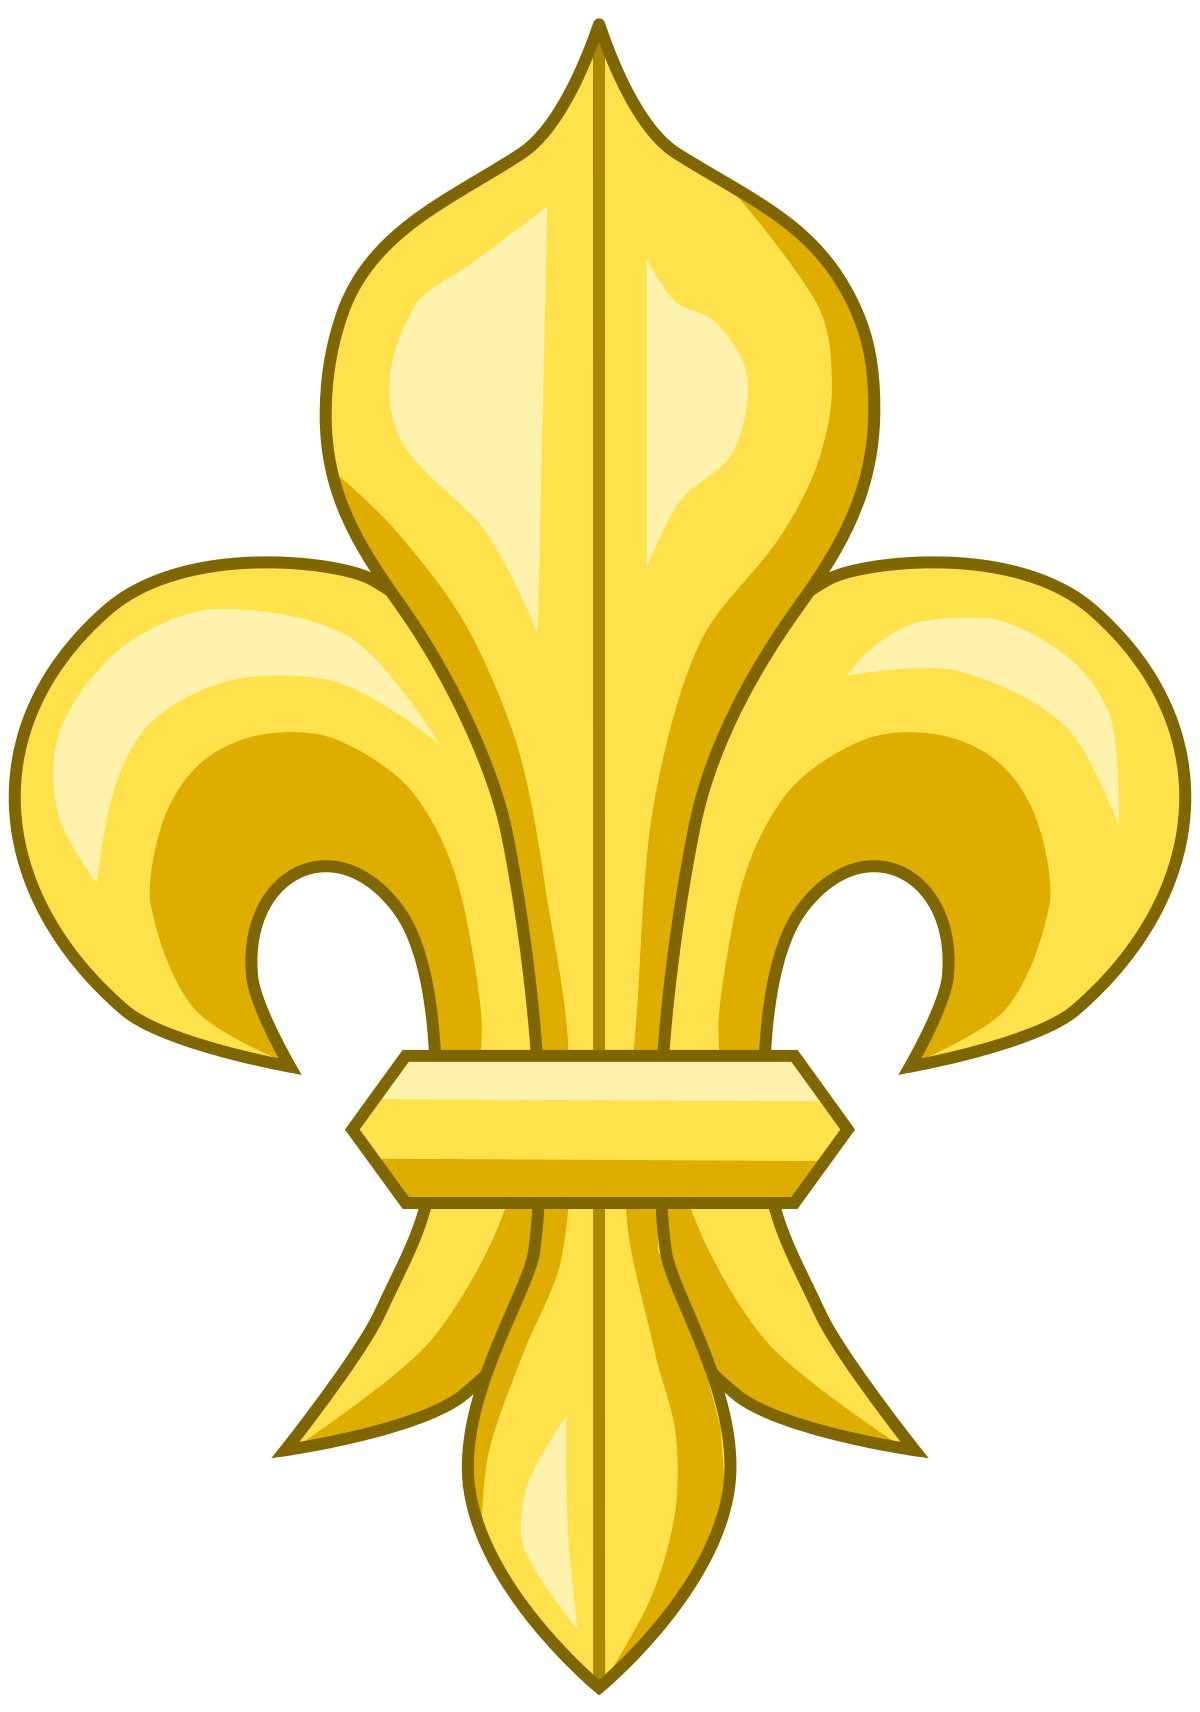 French drawing symbolistic. Fleur de lis wikipedia